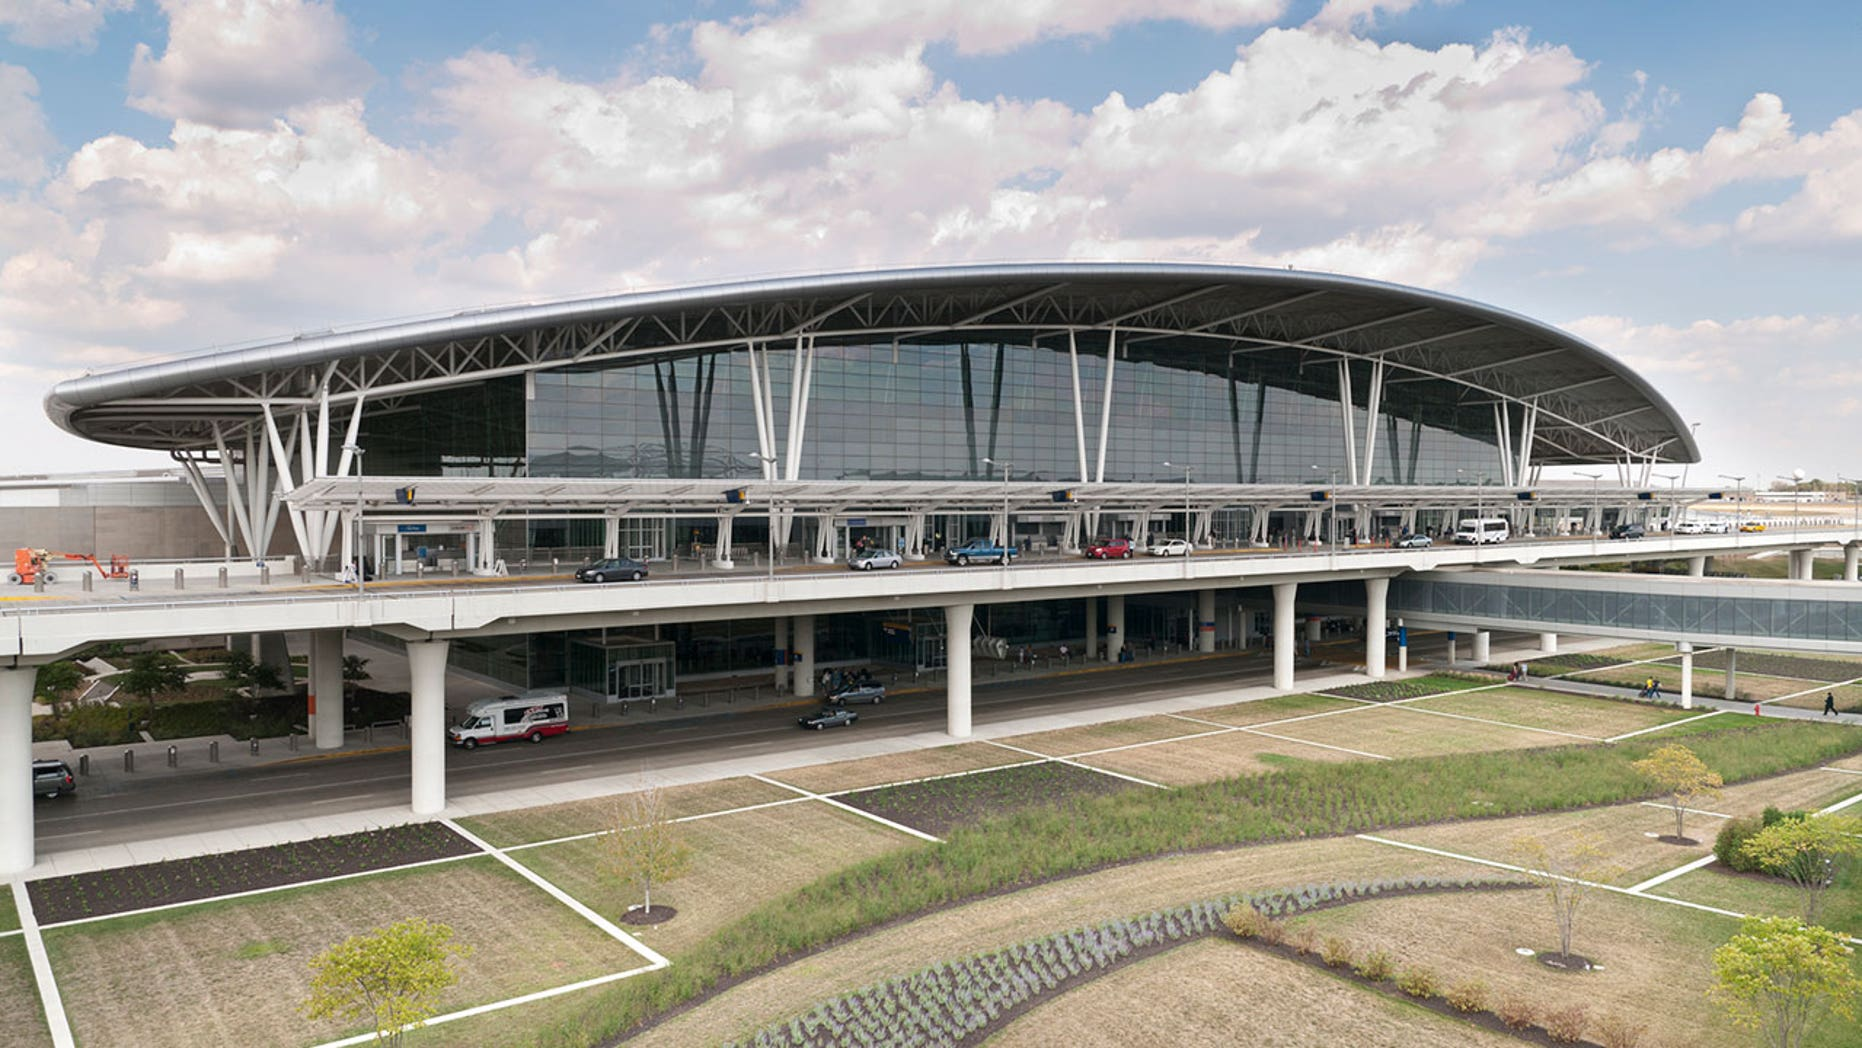 The Indianapolis International Airport said operations were briefly delayed on Thursday.